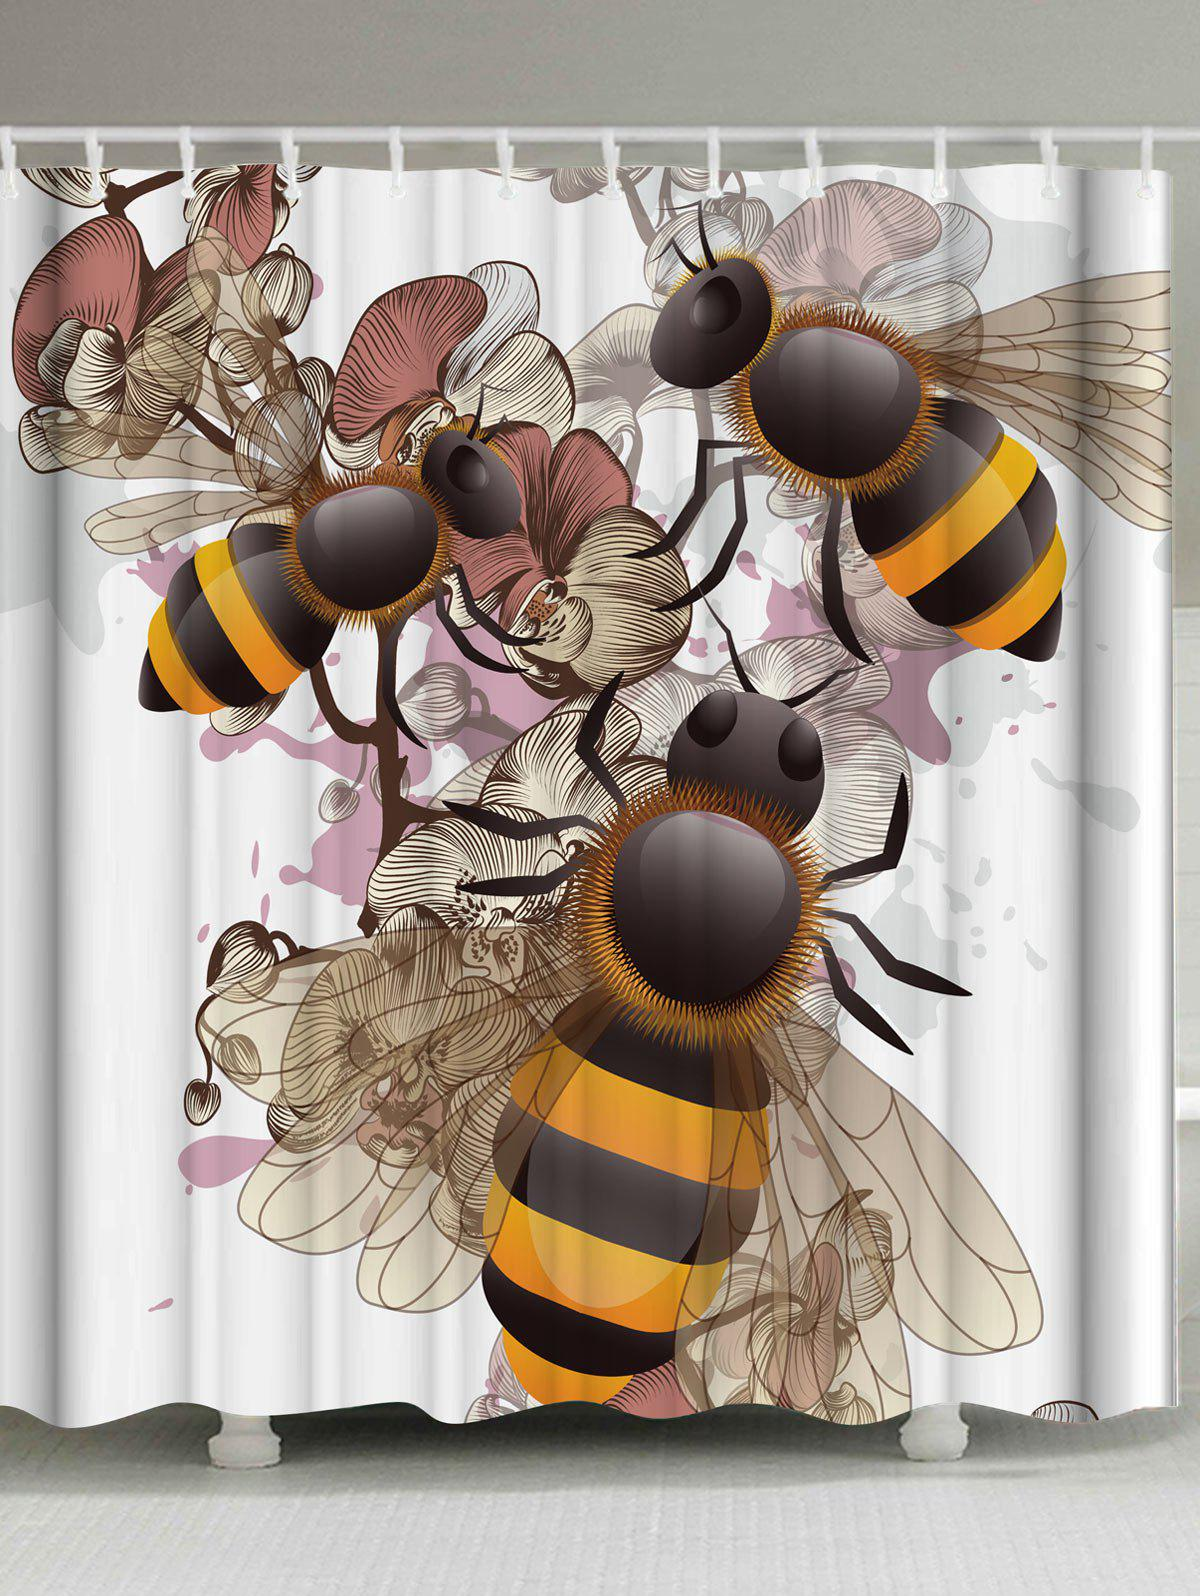 Floral Bee Fabric Shower Curtain with Hooks retro style waterproof fabric shower curtain with hooks